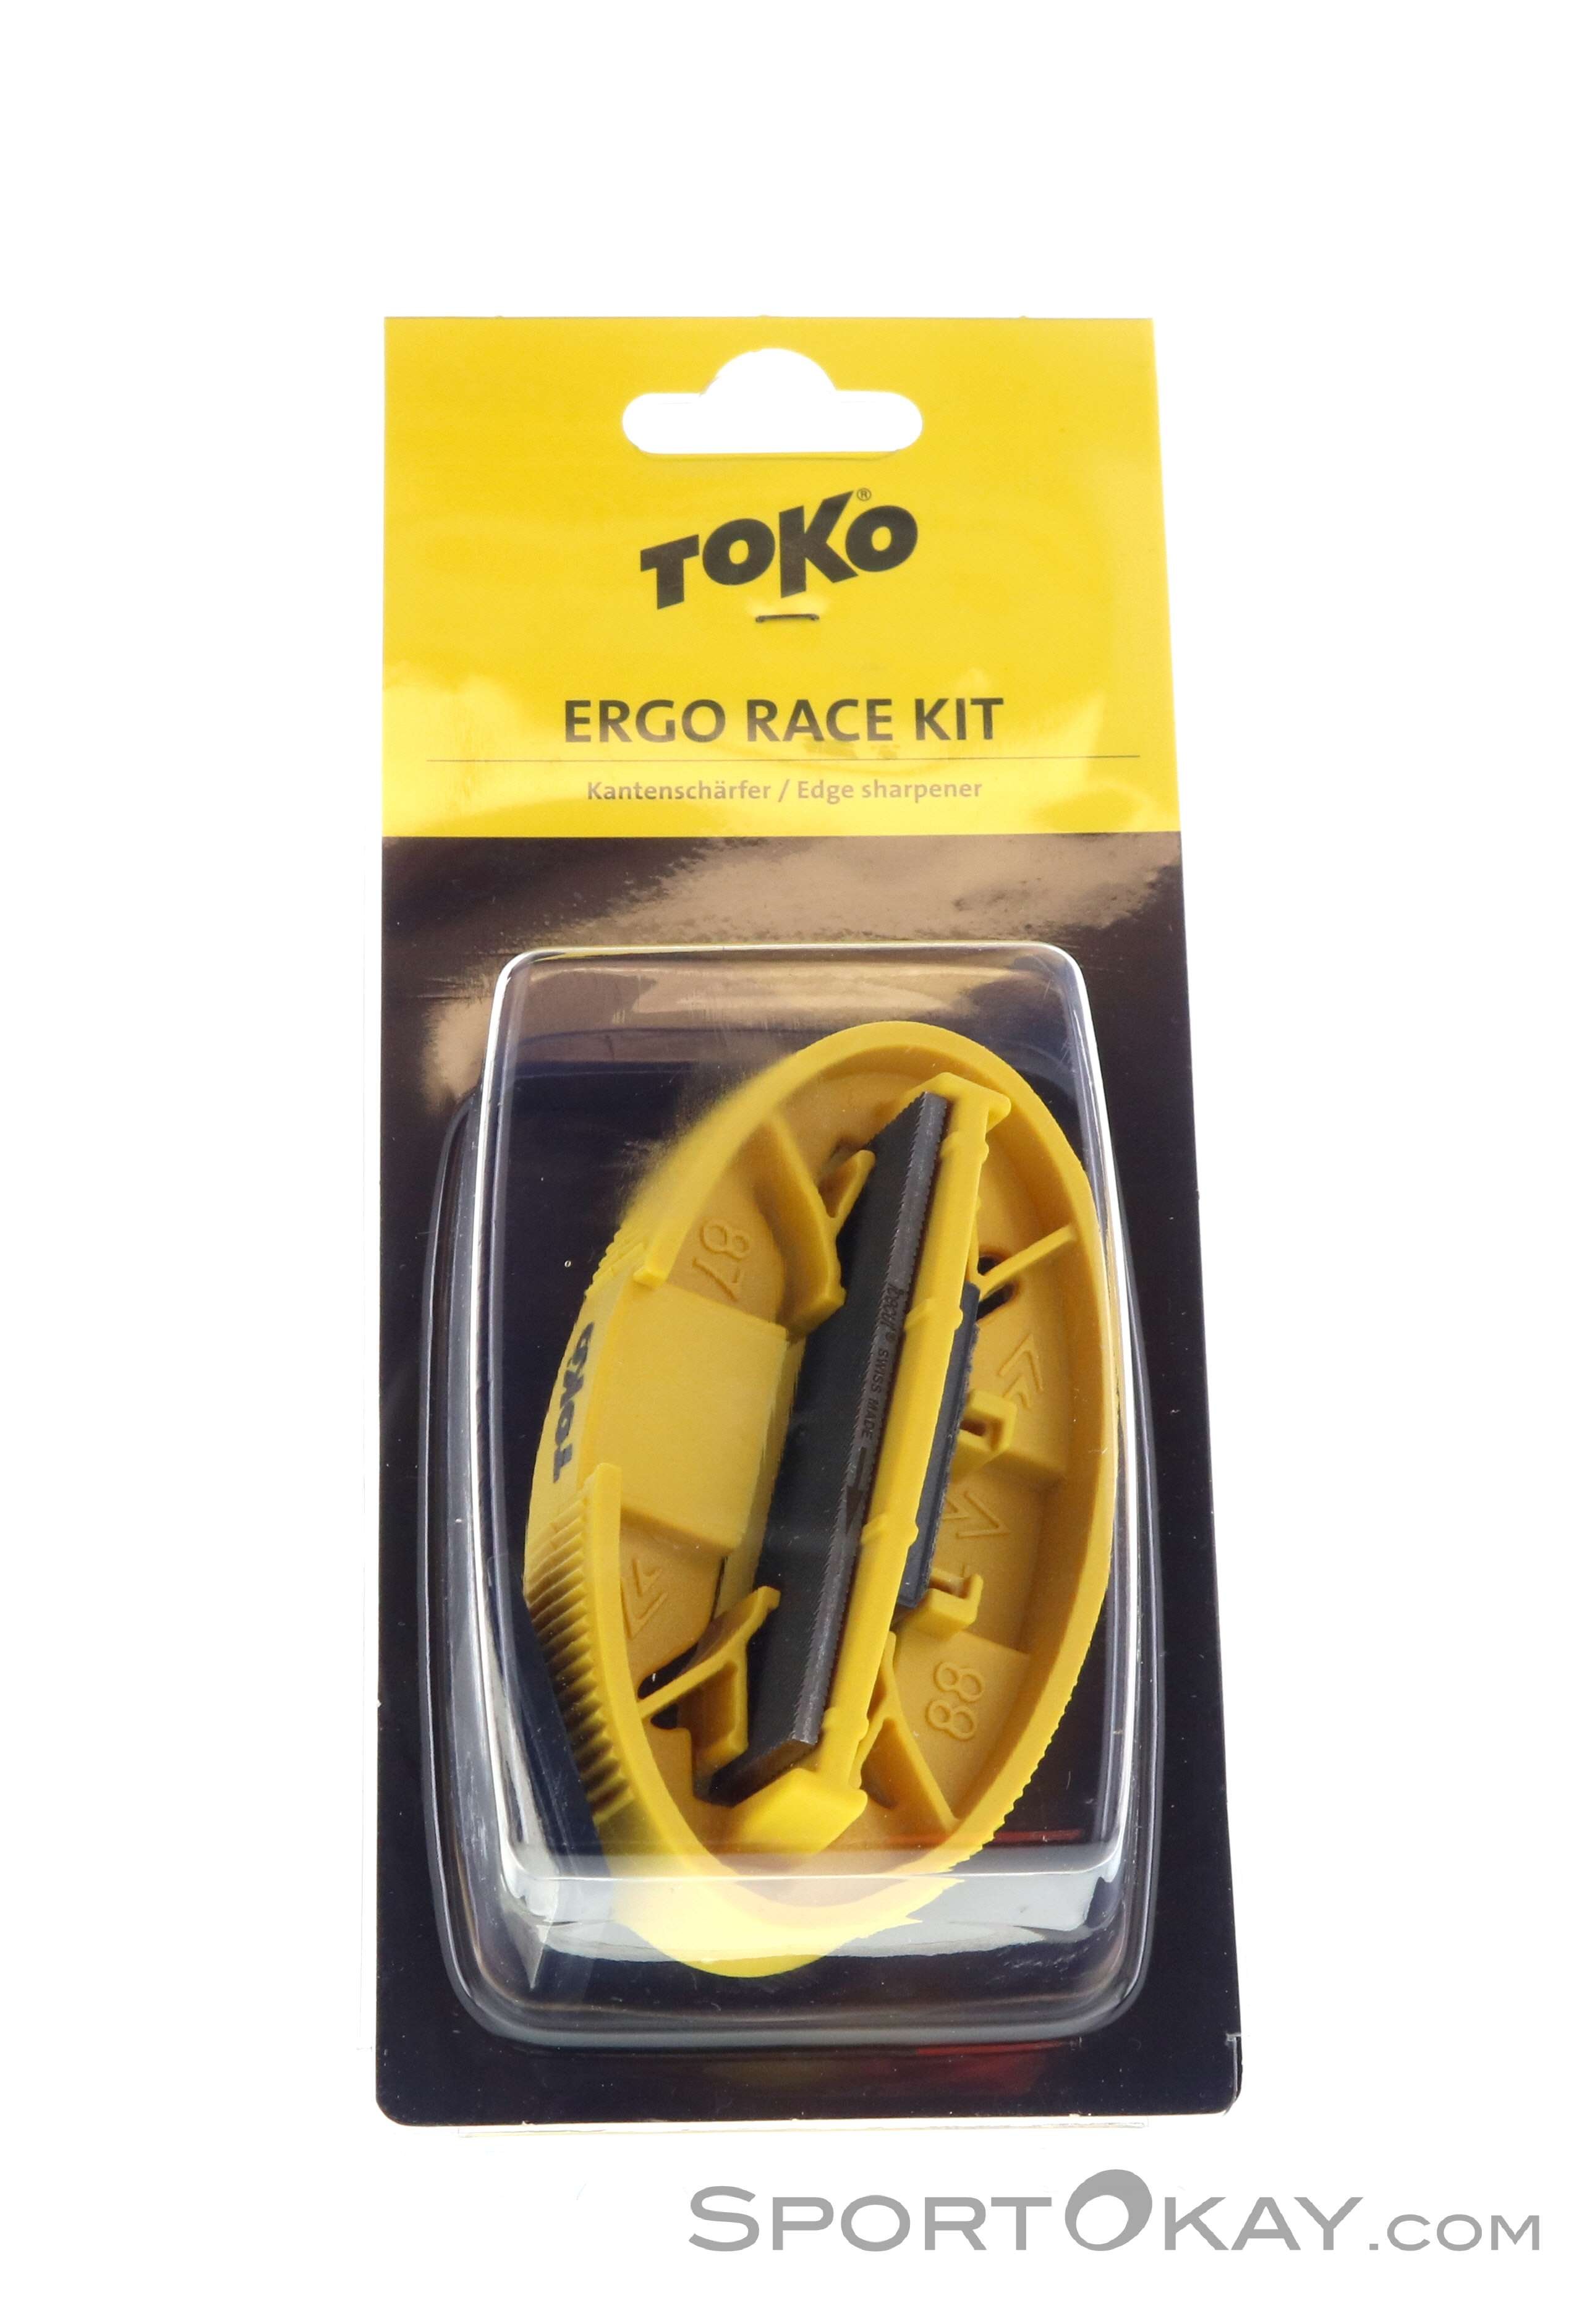 Toko Ergo Race Kit Kantenschleifer-Gelb-One Size